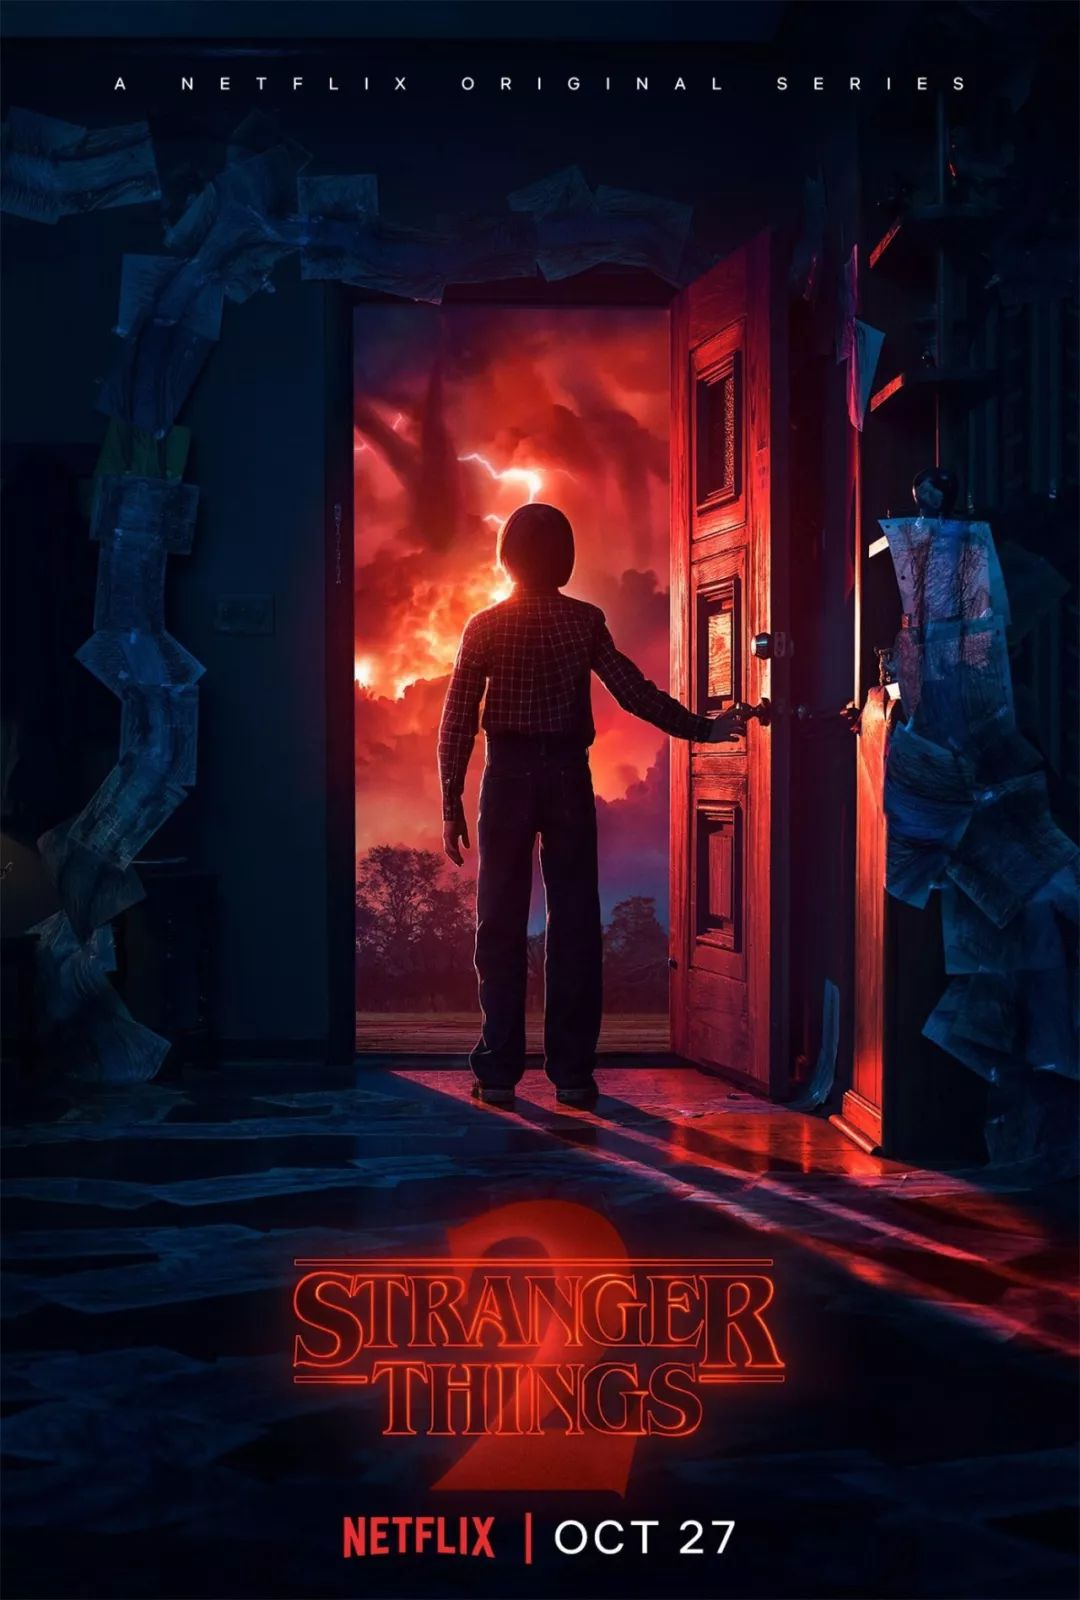 Stranger Things poster alternate dimension